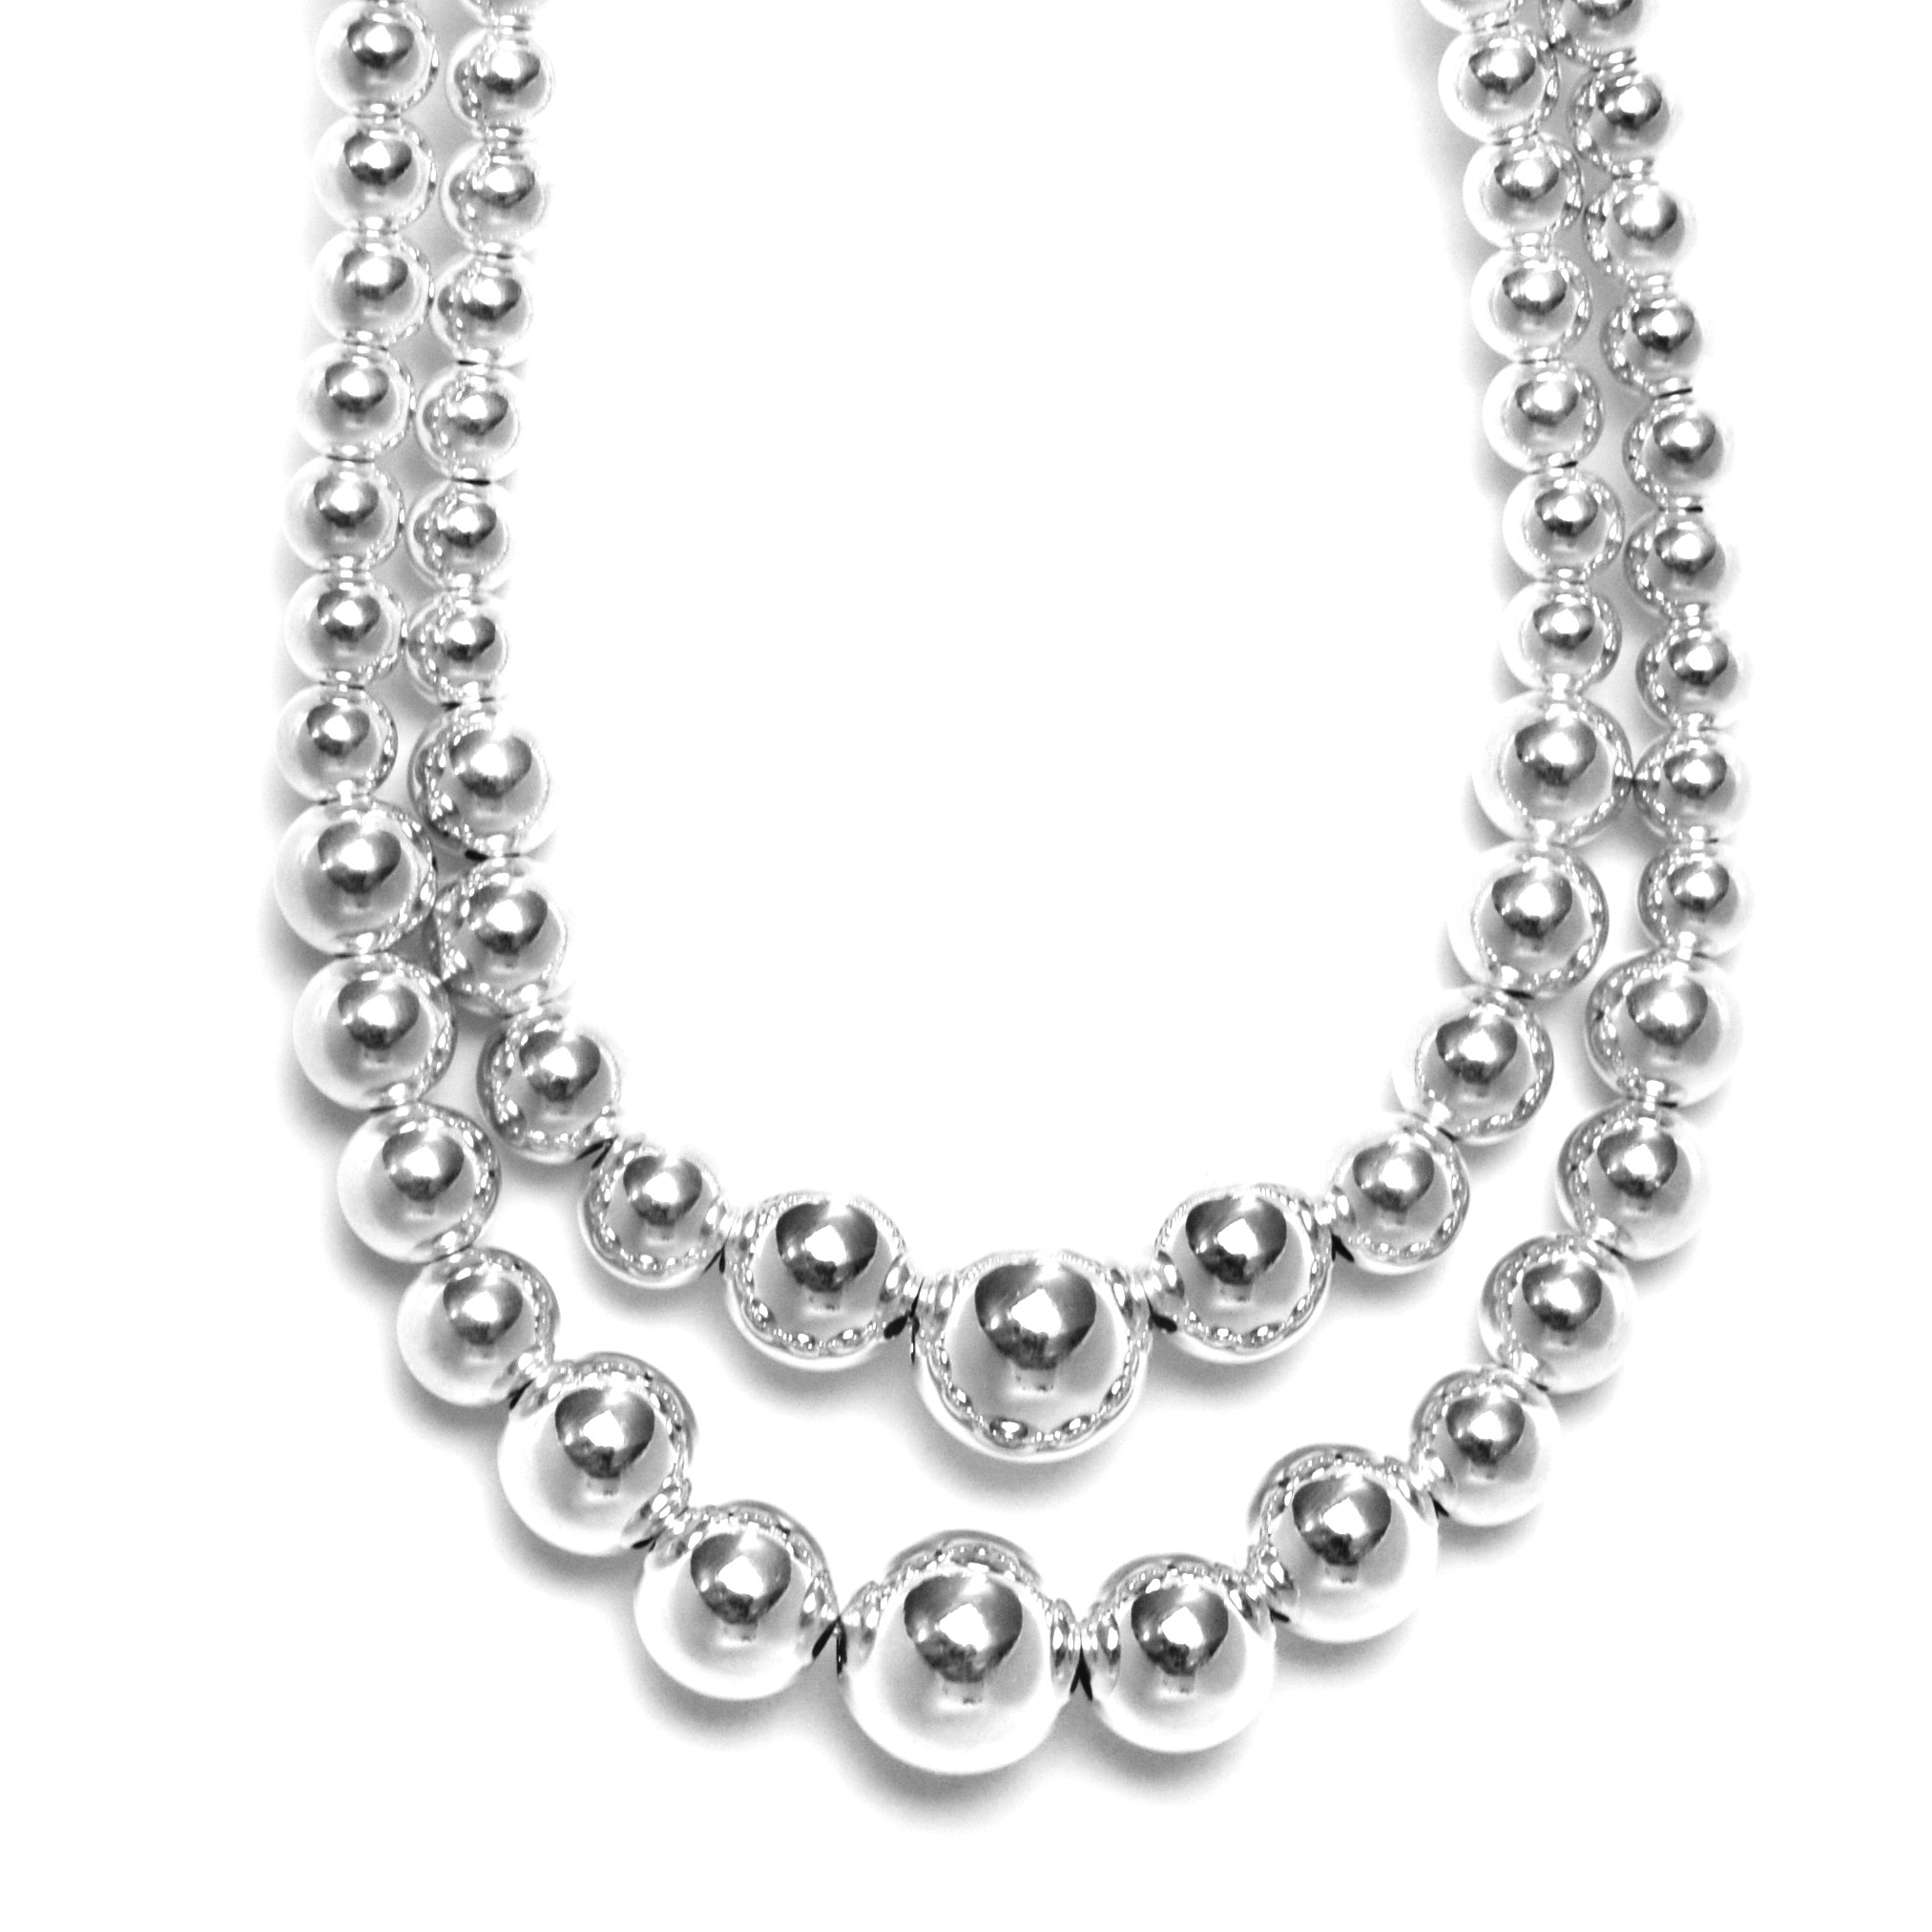 silver jewelry com amazon sterling polished yzl dp necklace bead